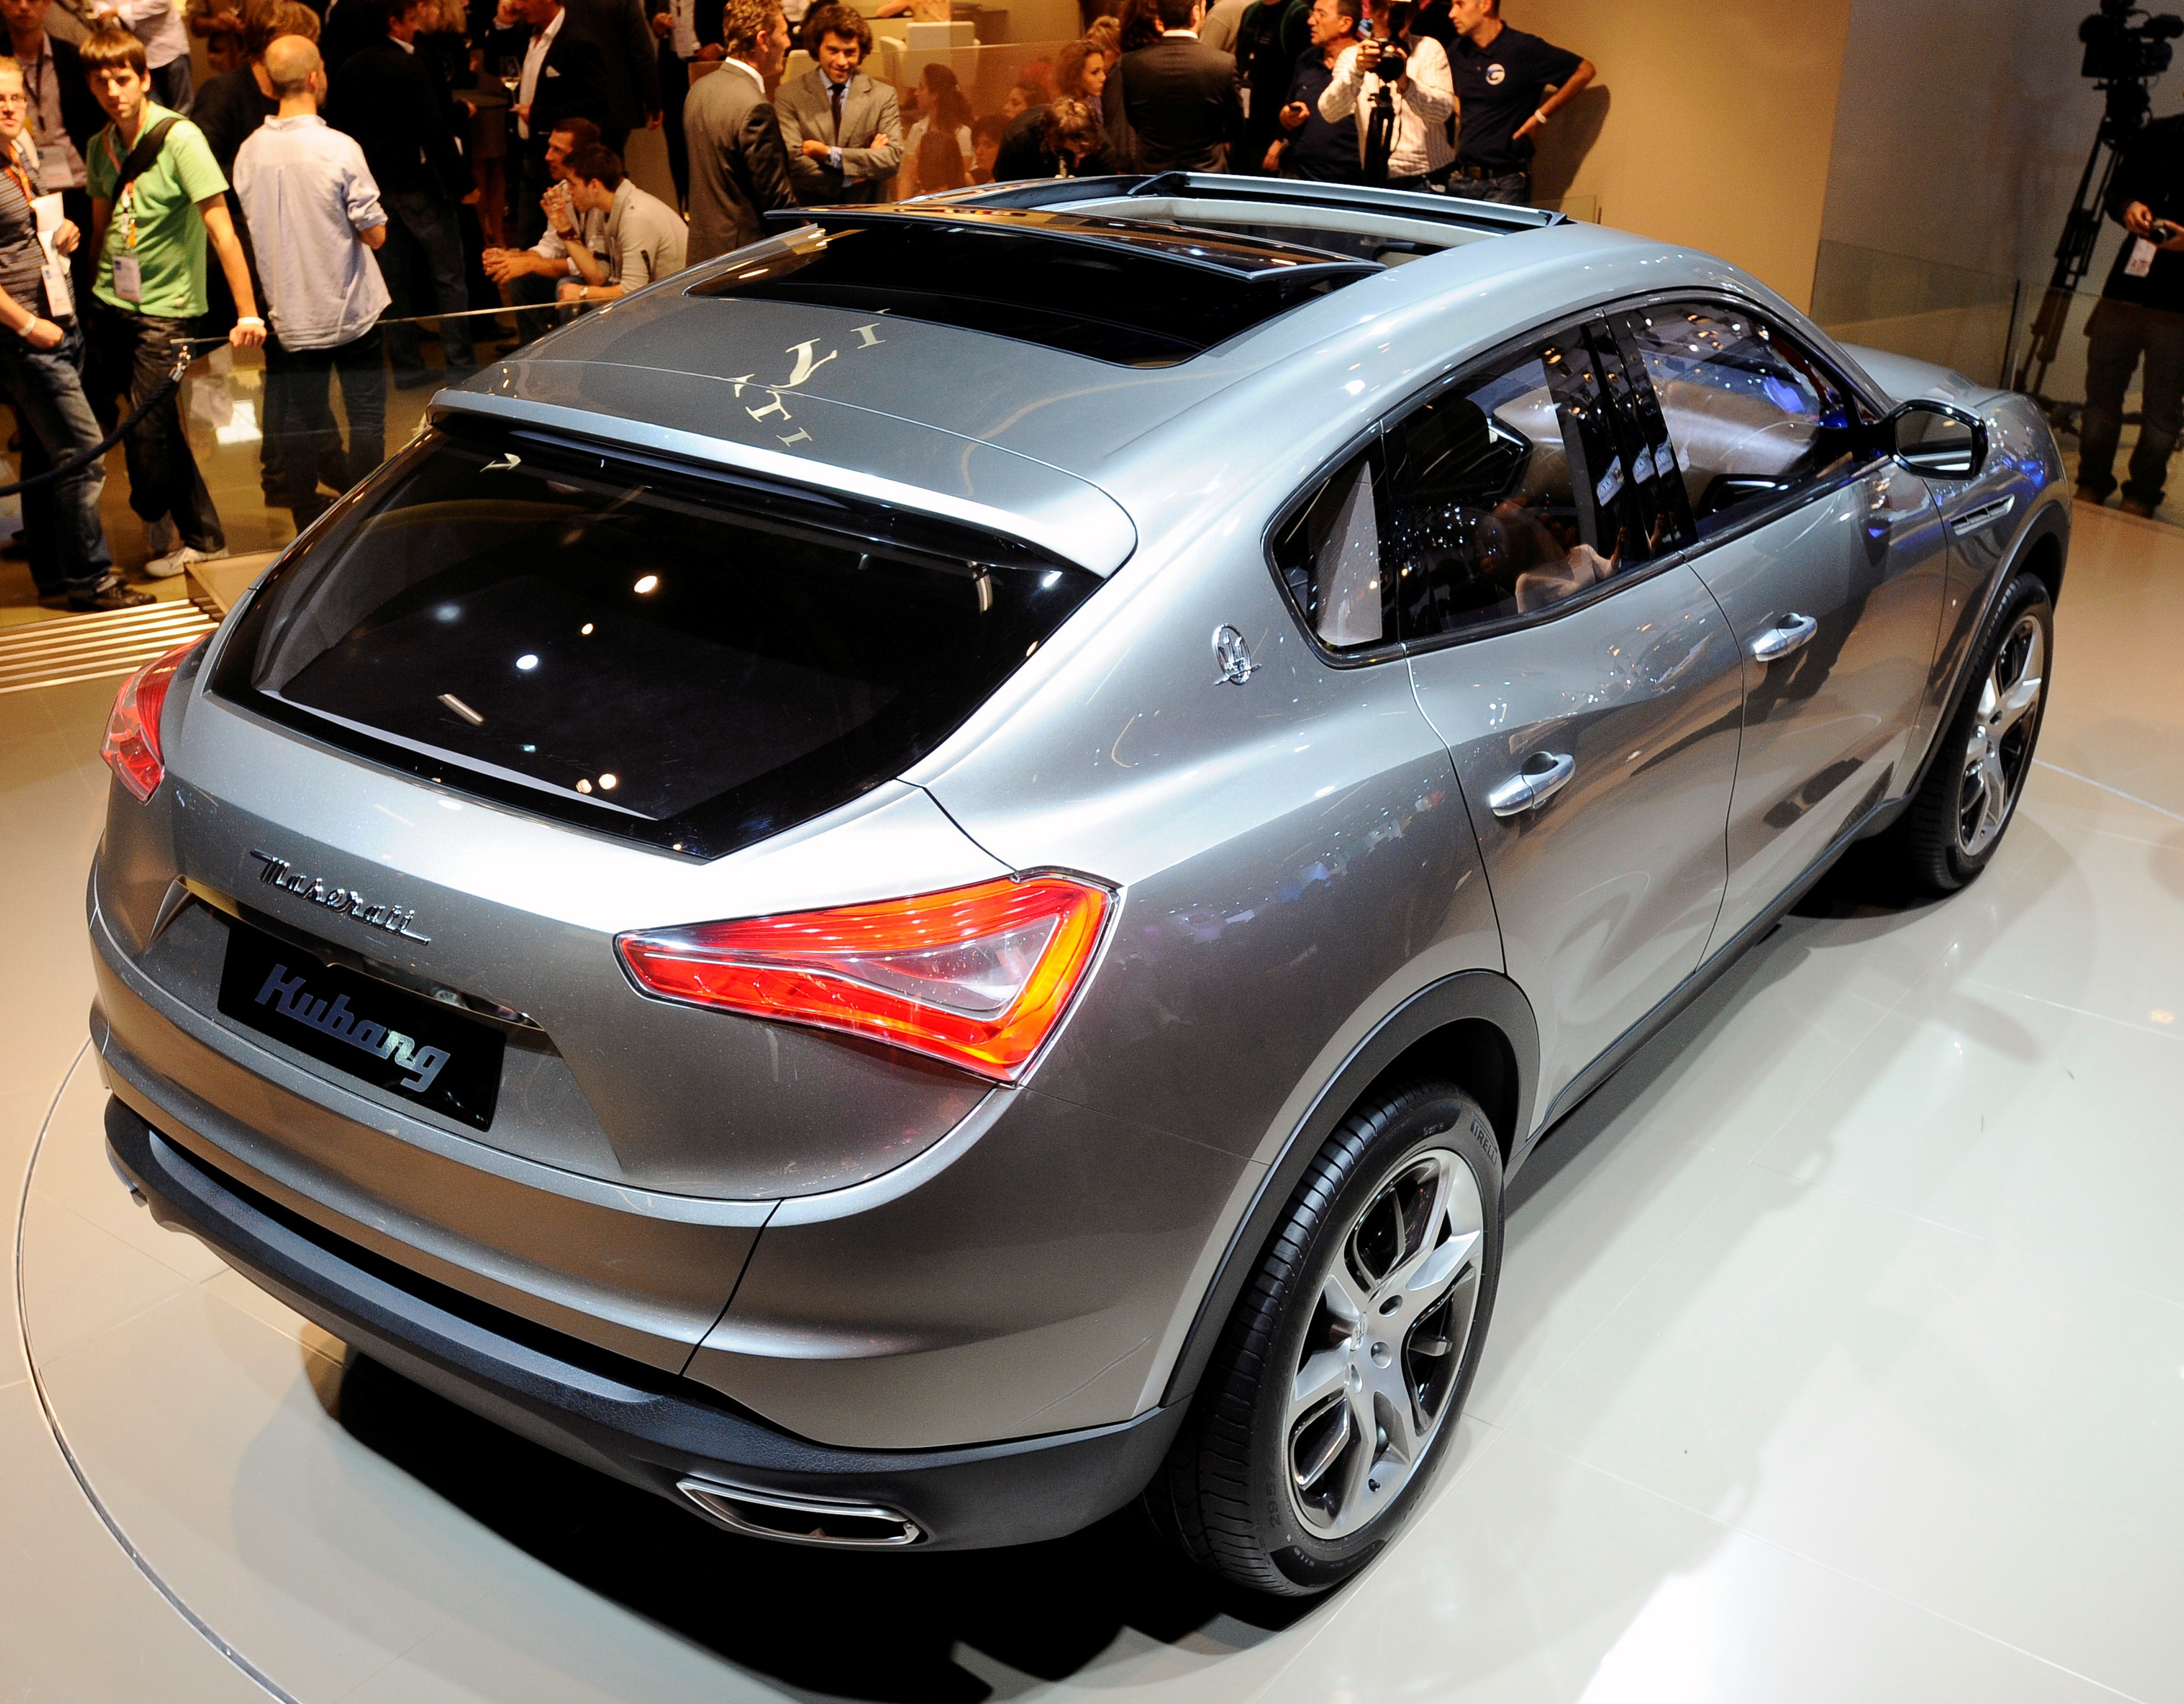 Maserati Levante Suv Wallpapers Images Photos Pictures